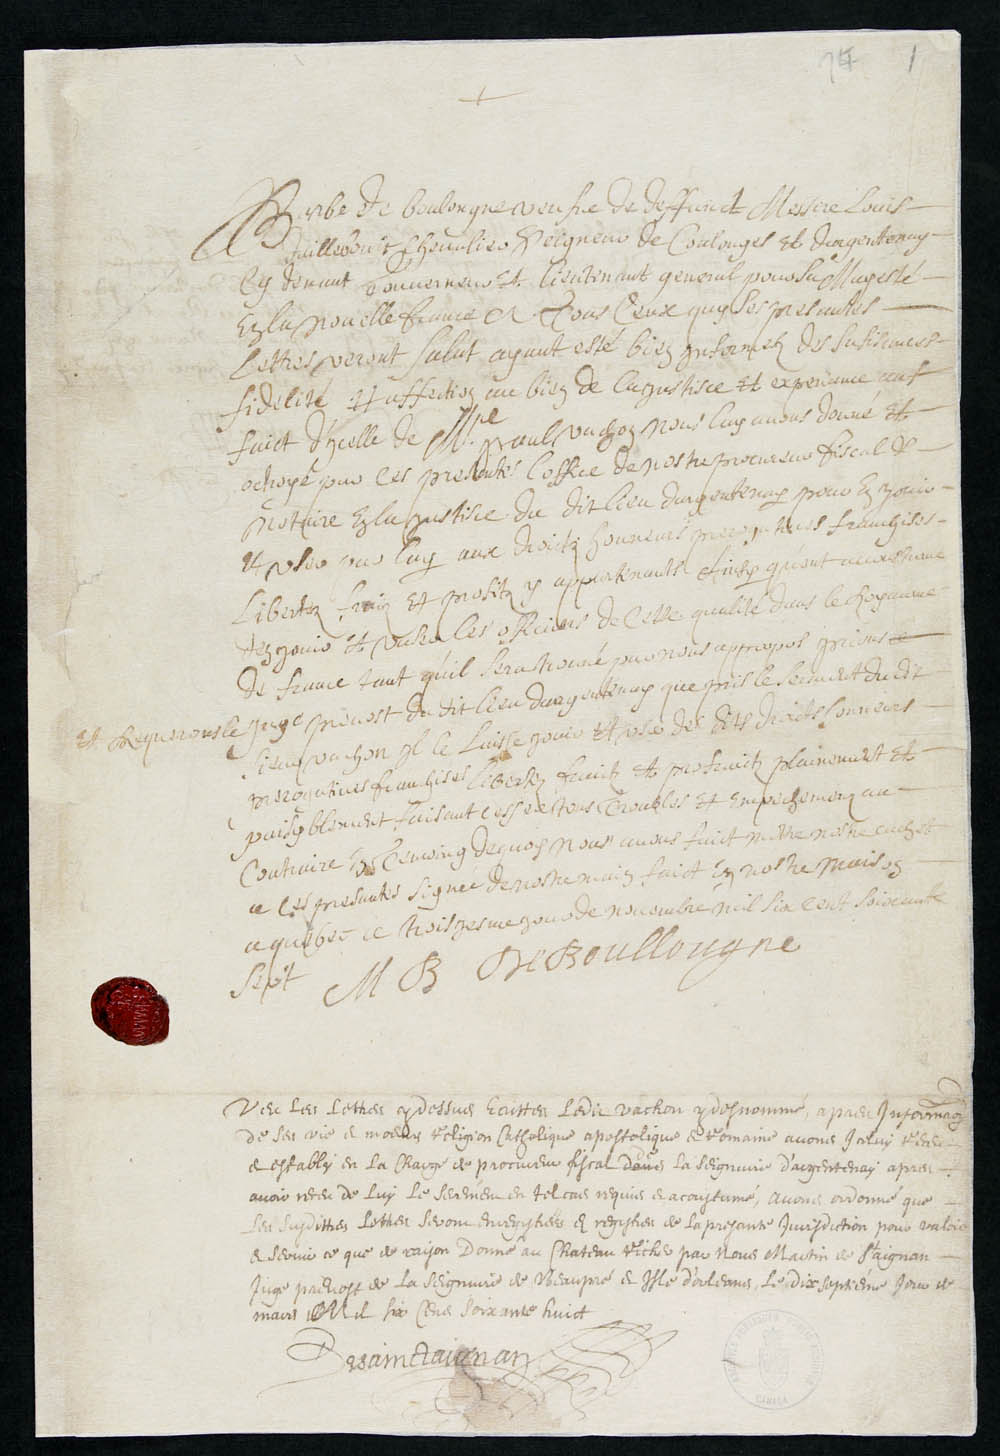 Commission as financial administrator and notary of the seigneury of Argentenay, granted to Paul Vachon by Marie-Barbe de Boullongne, November 3, 1667, CA ANC MG8-F100